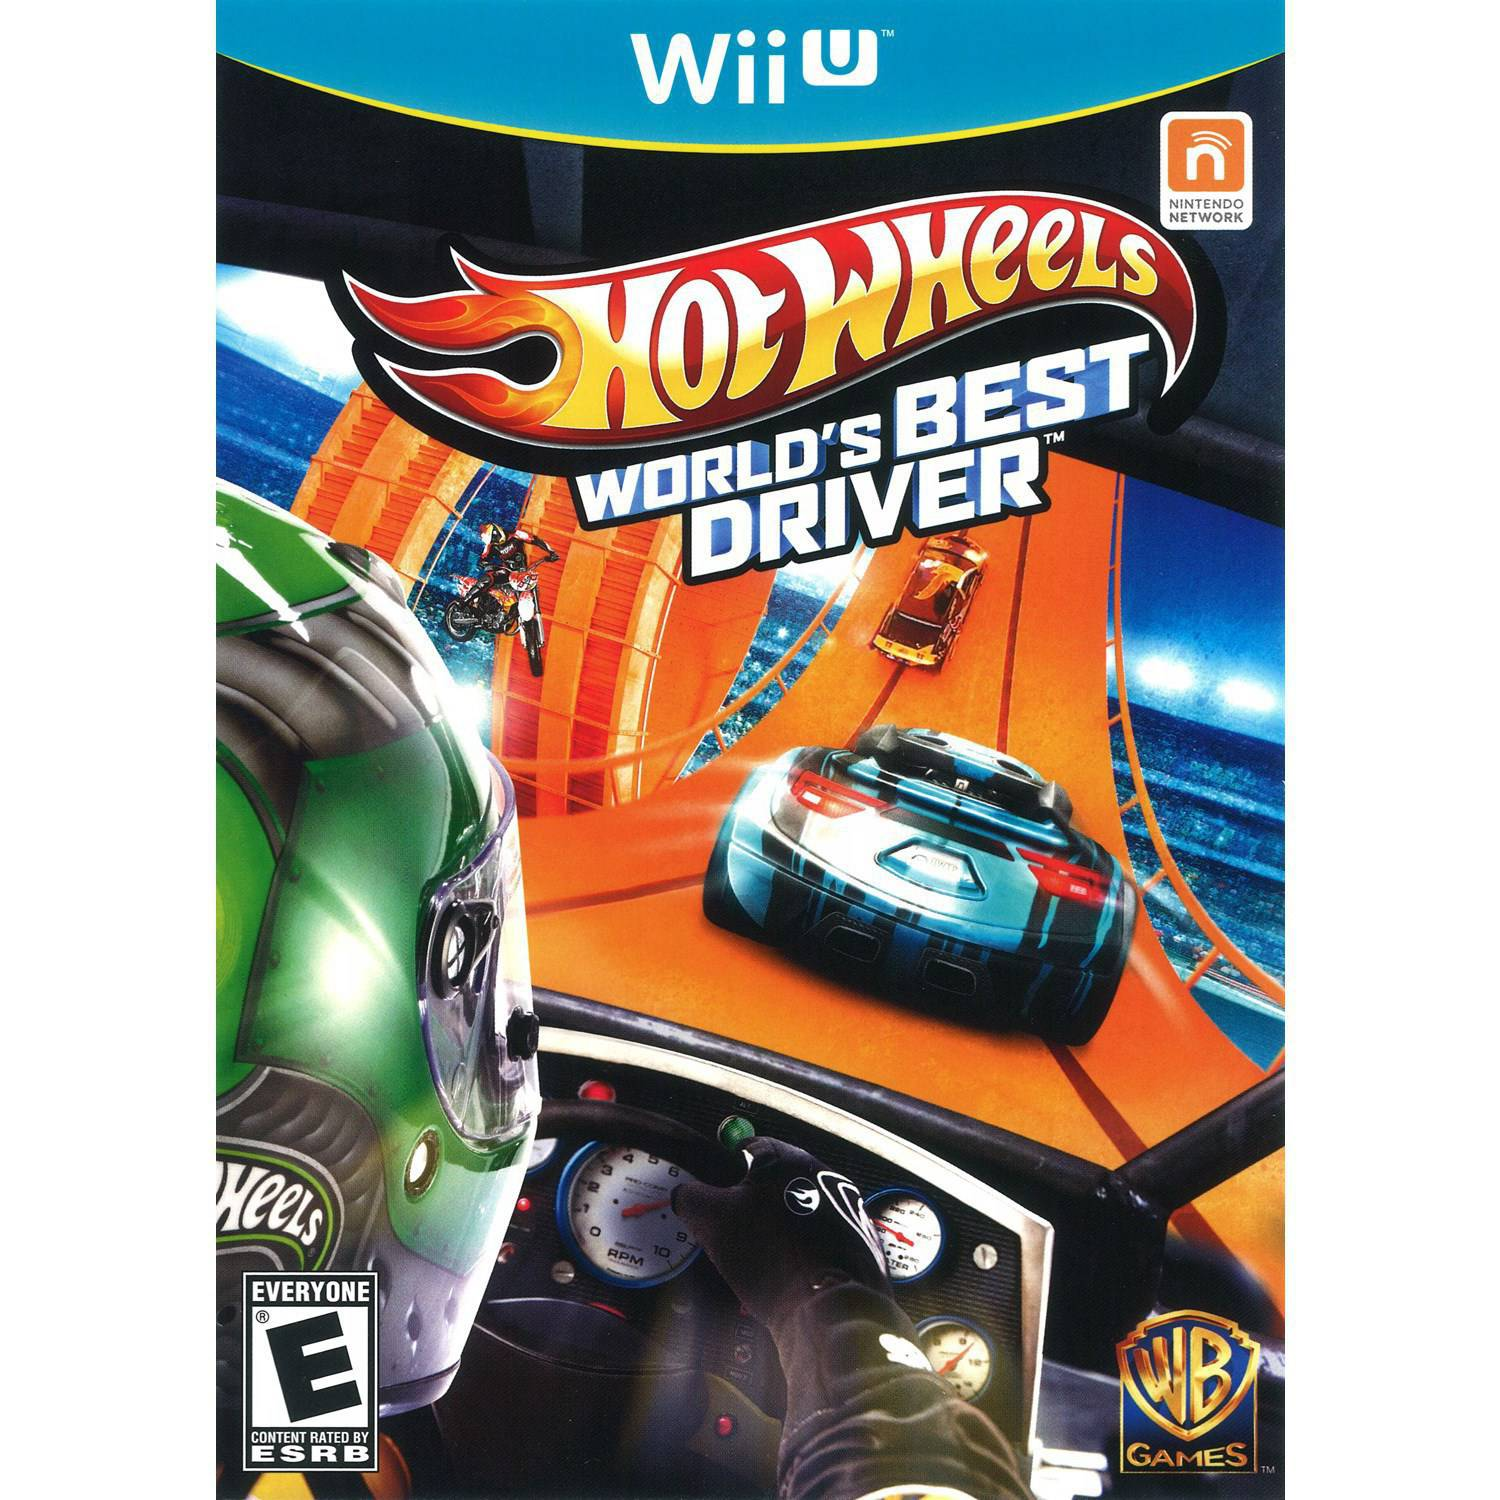 HOT WHEELS:WORLDS BEST DRIVER WIIU ACTION